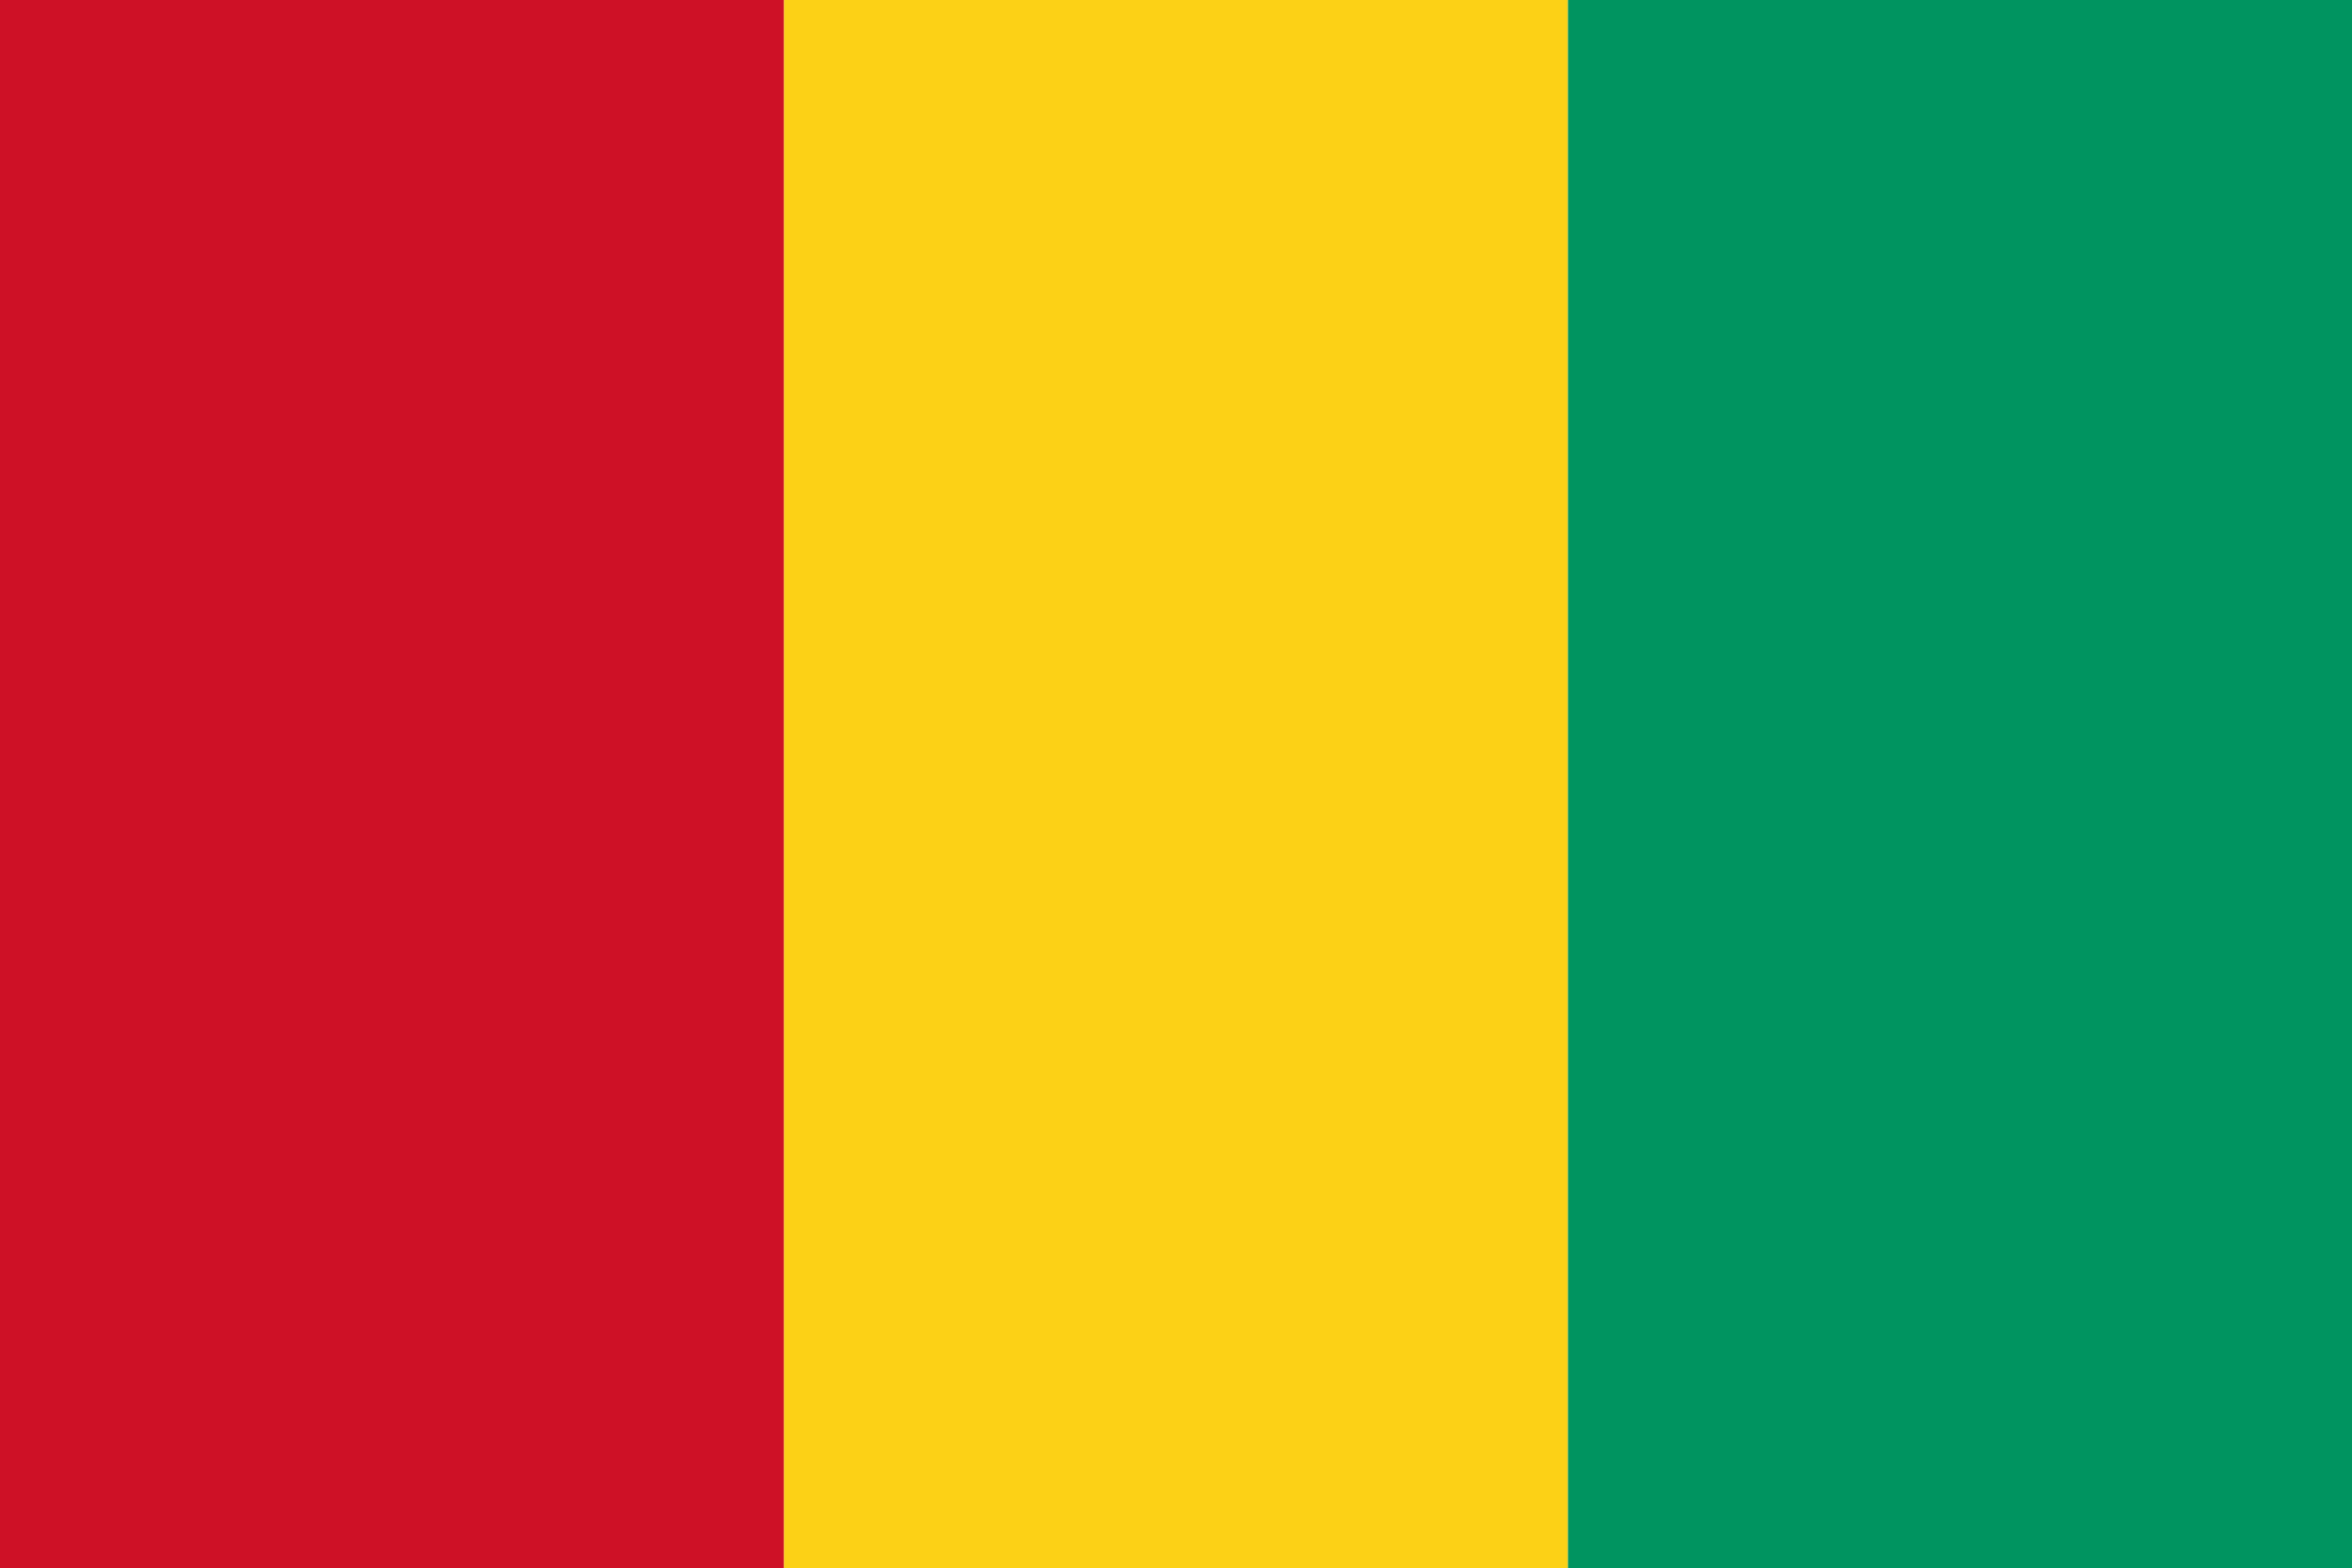 Flag of Guinea, Africa